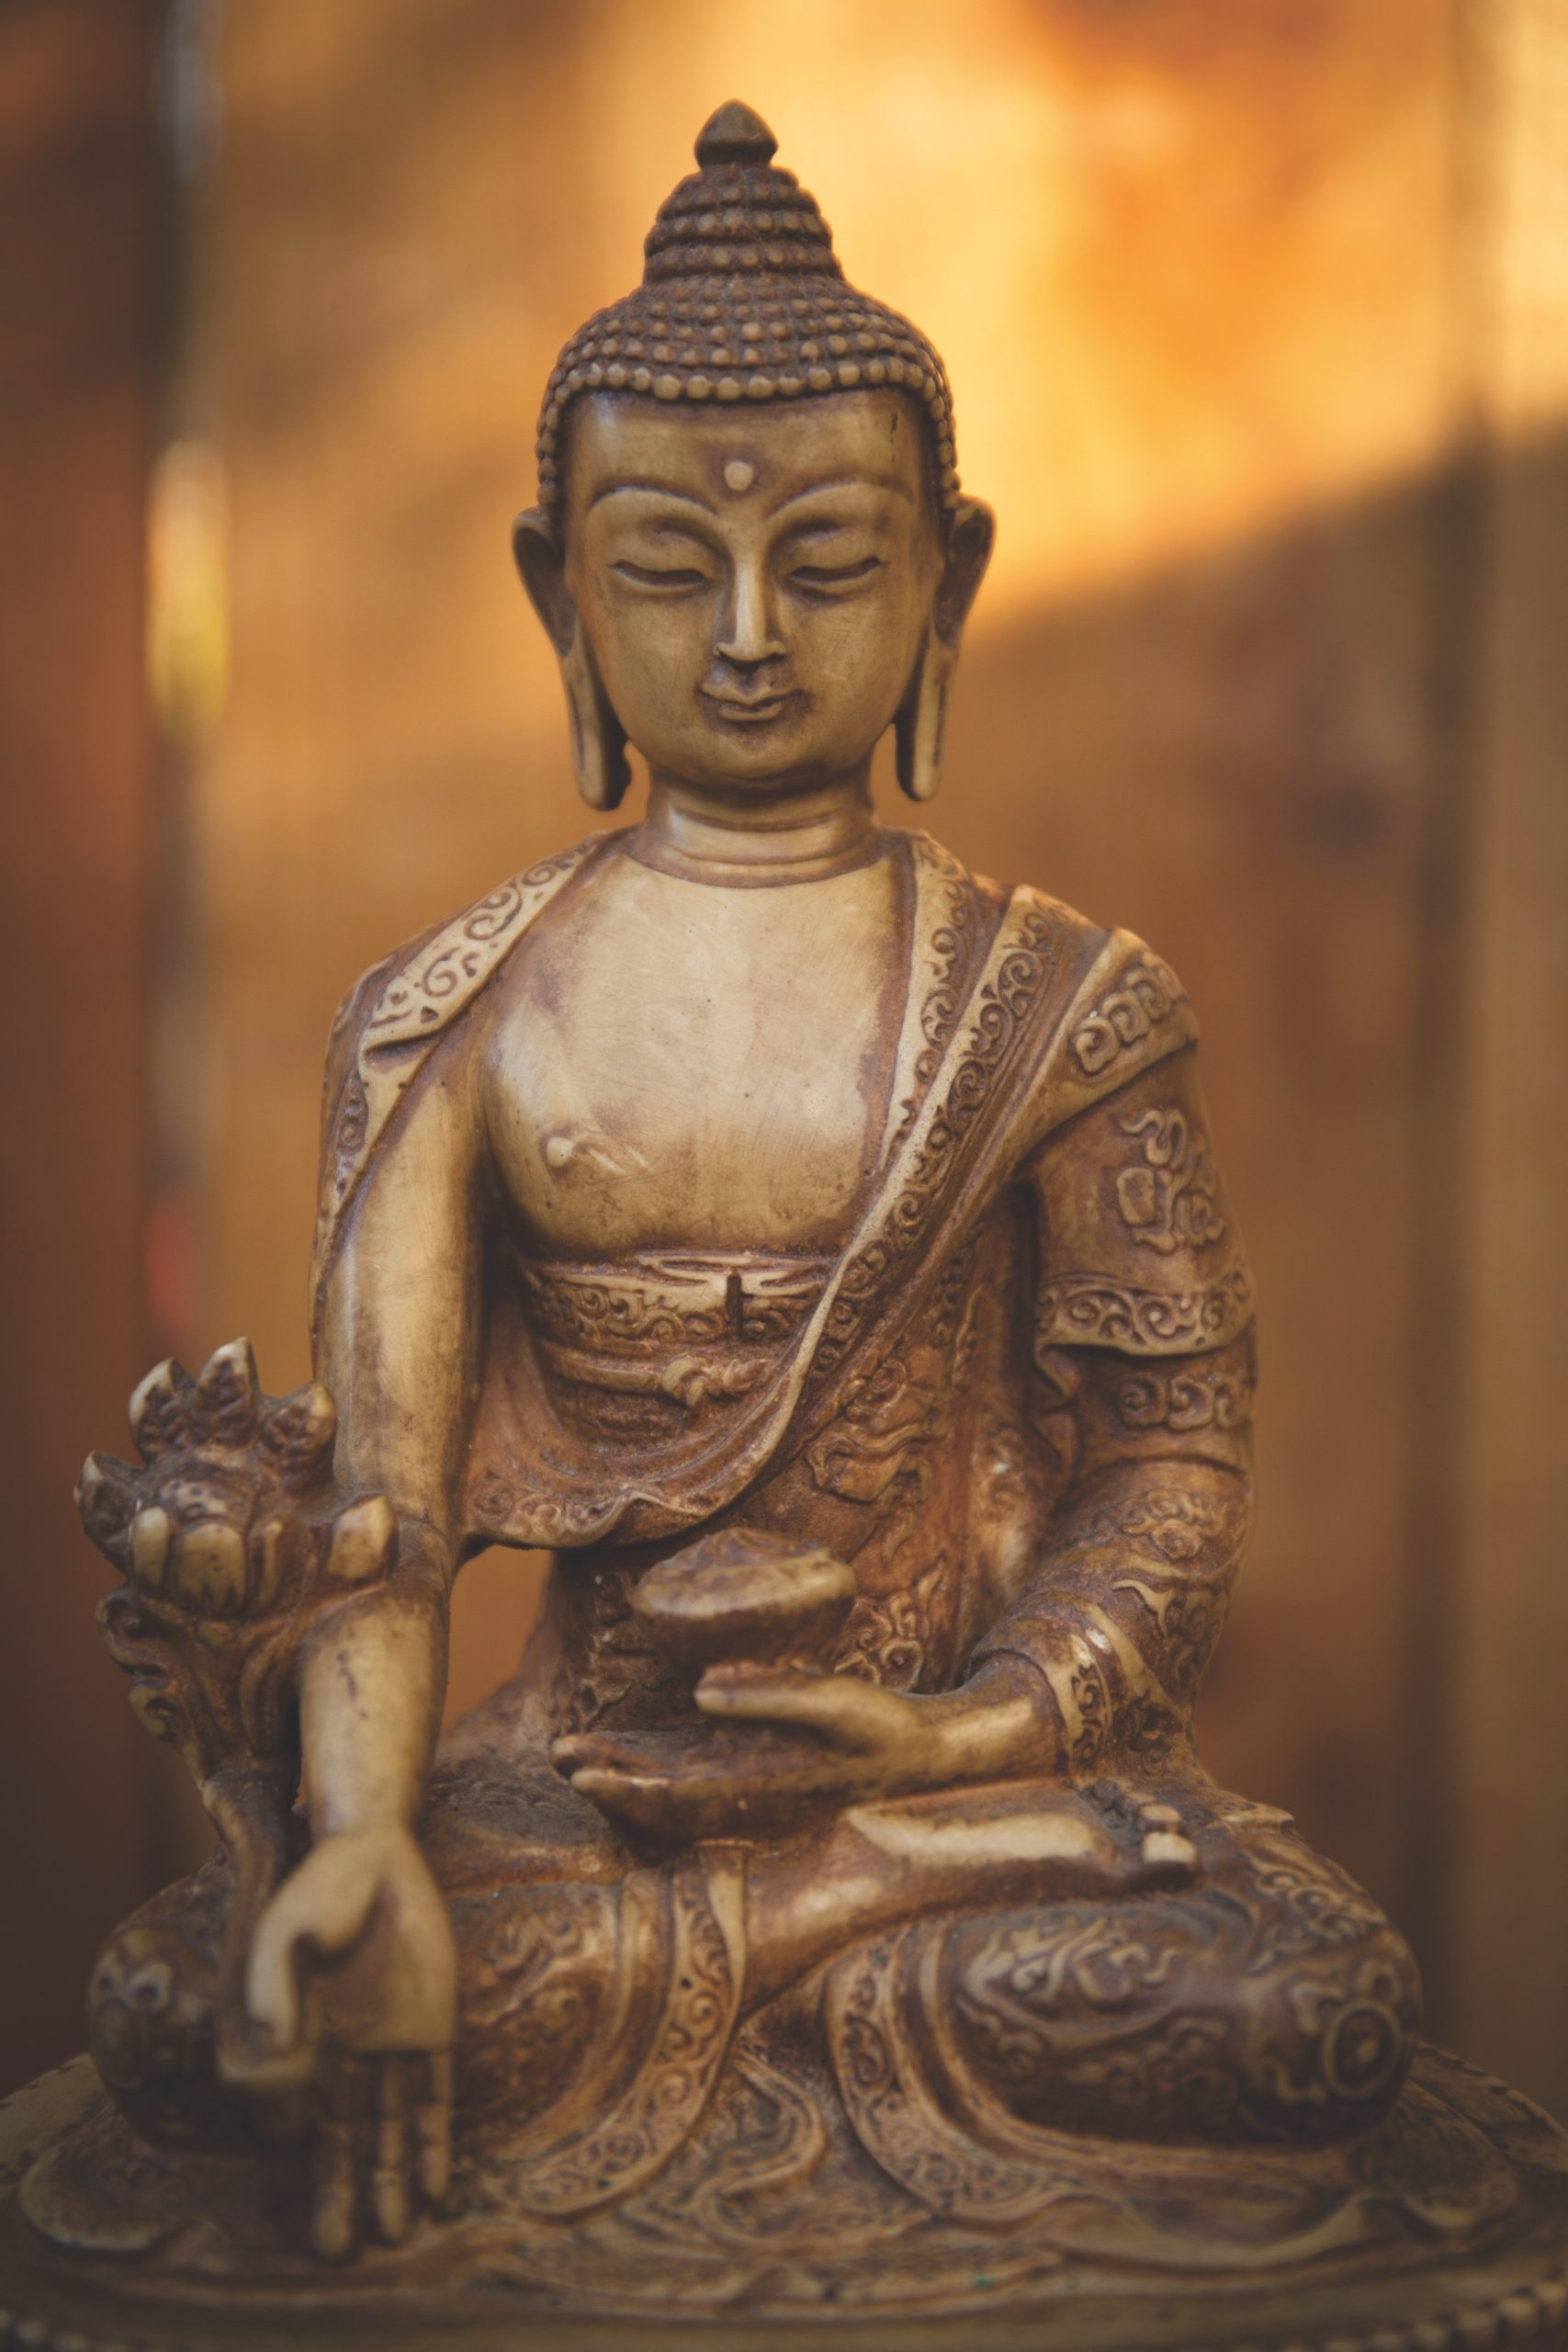 An image of the Medicine Buddha. For a podcast titled Kicking your butt down the path to enlightenment. 10,000 Victories school is located in San Rafael, Marin, CA.